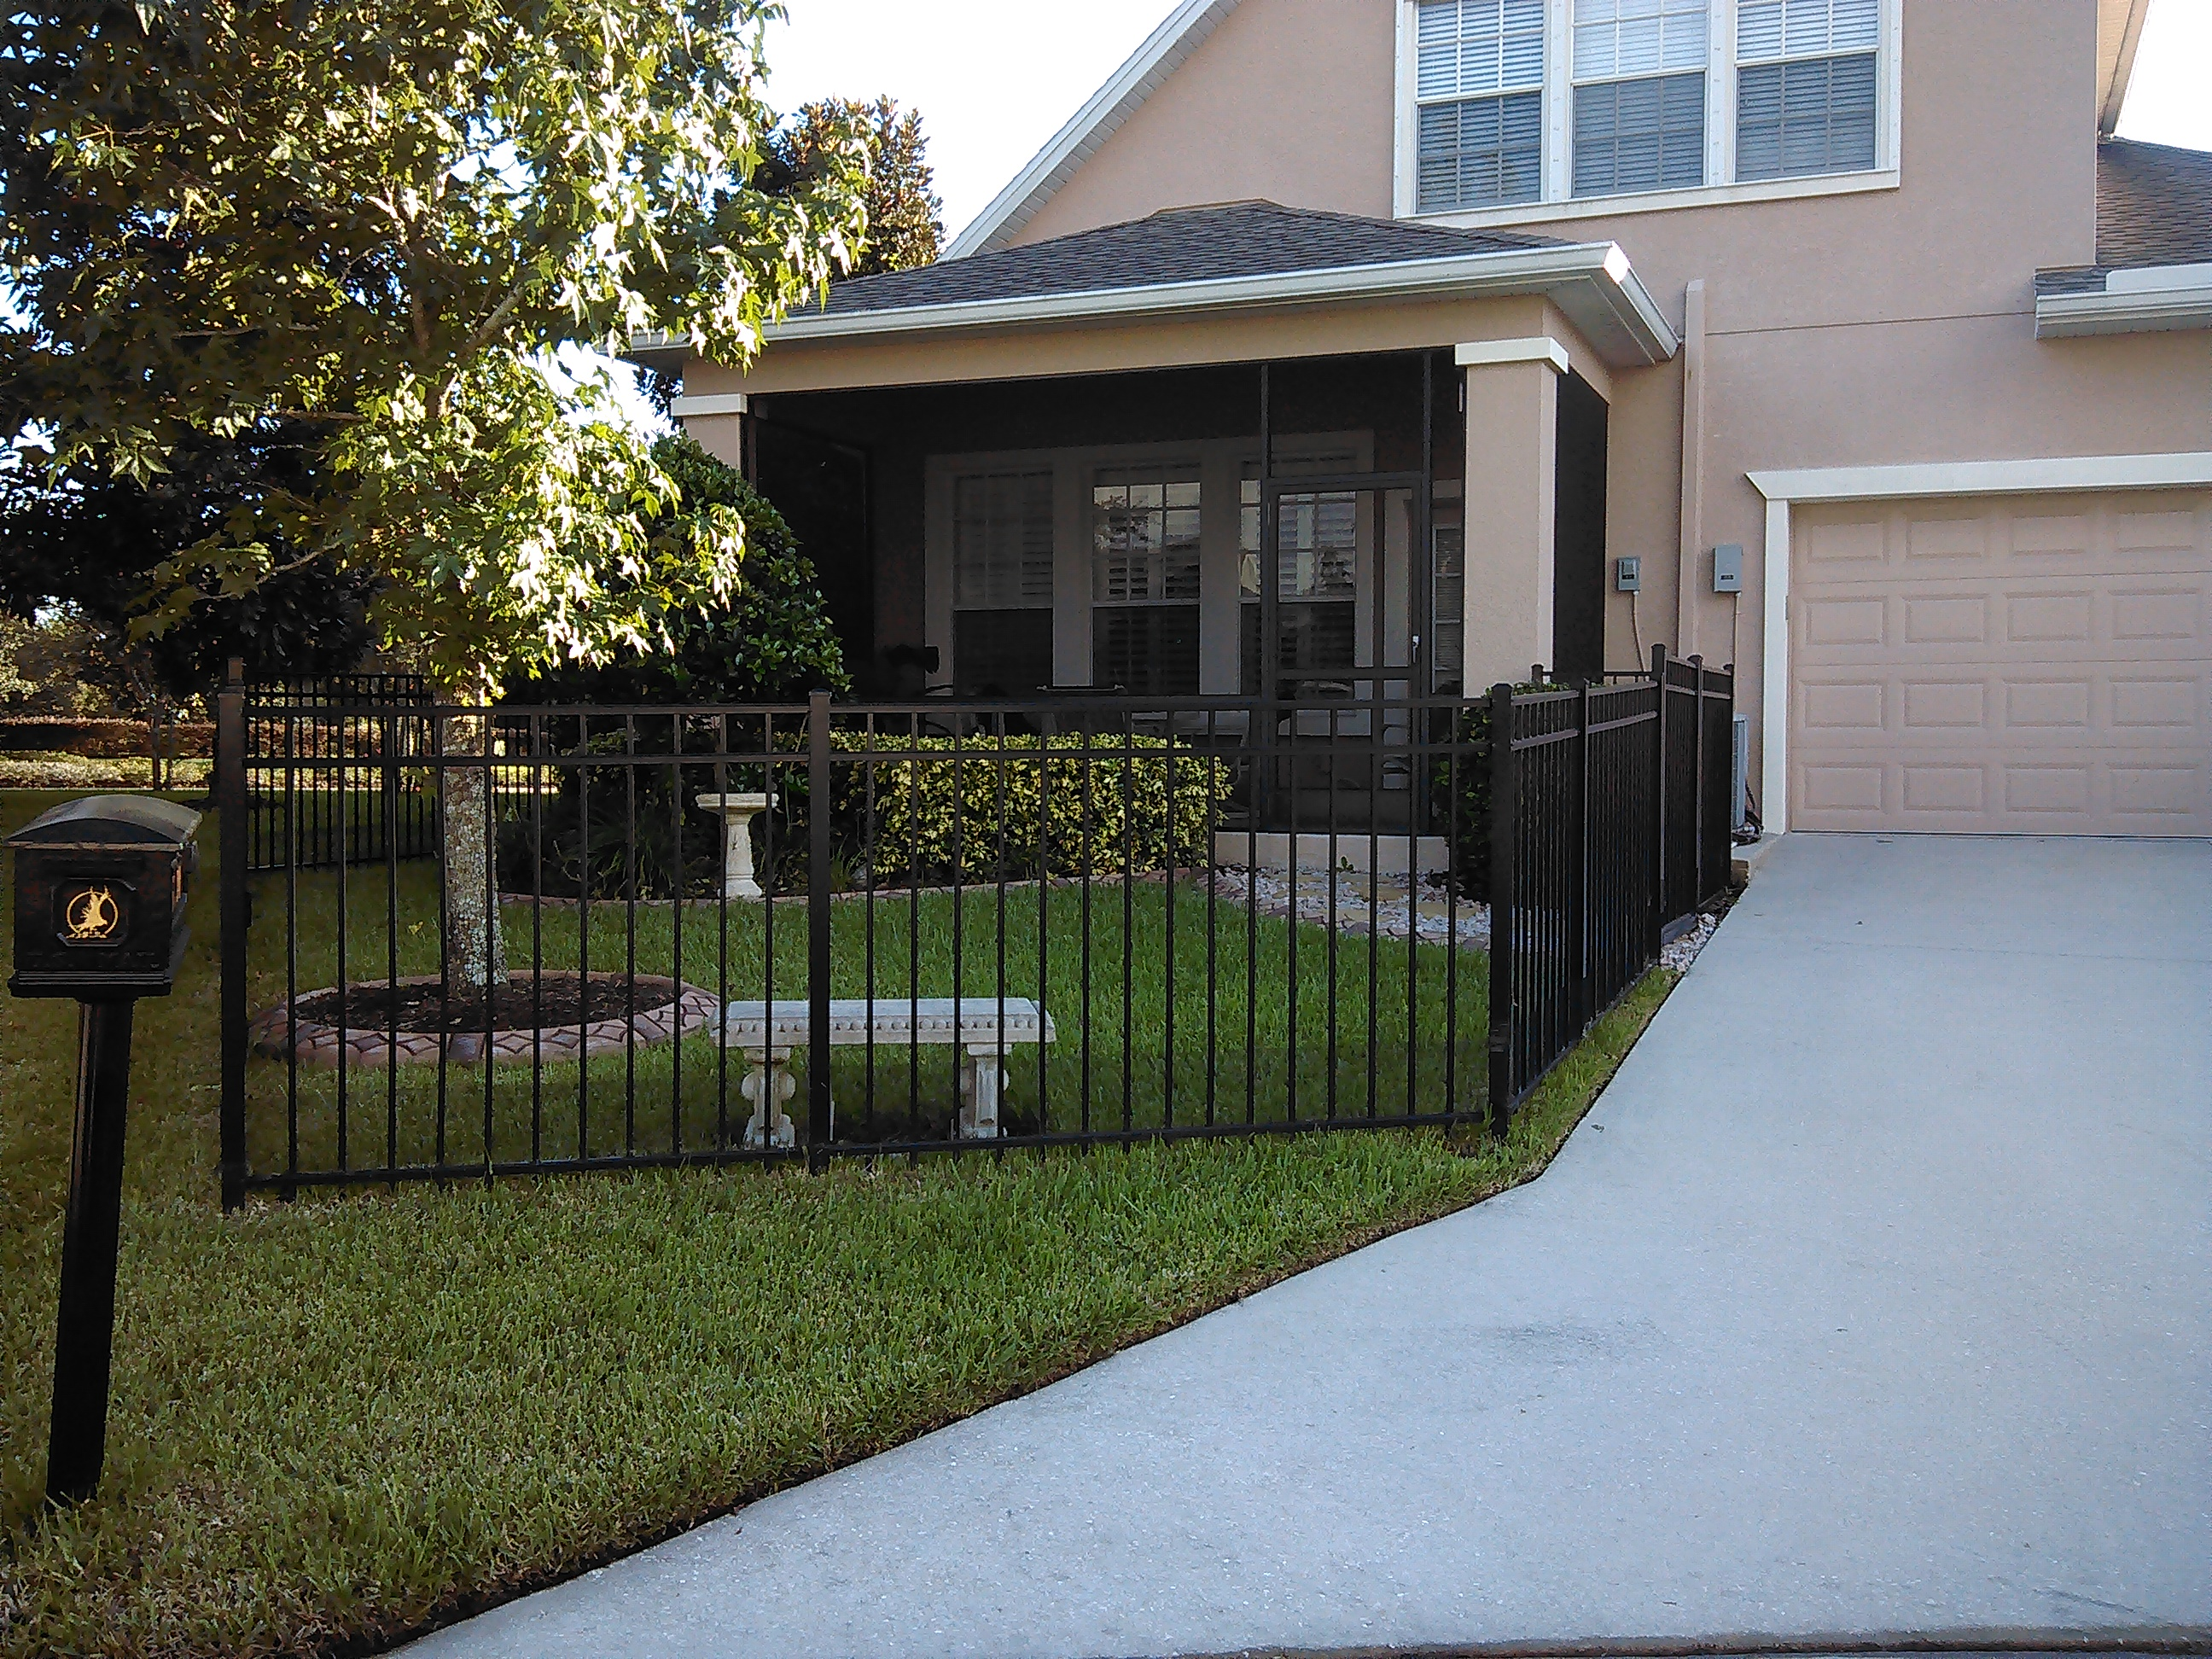 Lawn Care Service in Tampa, FL, 33605